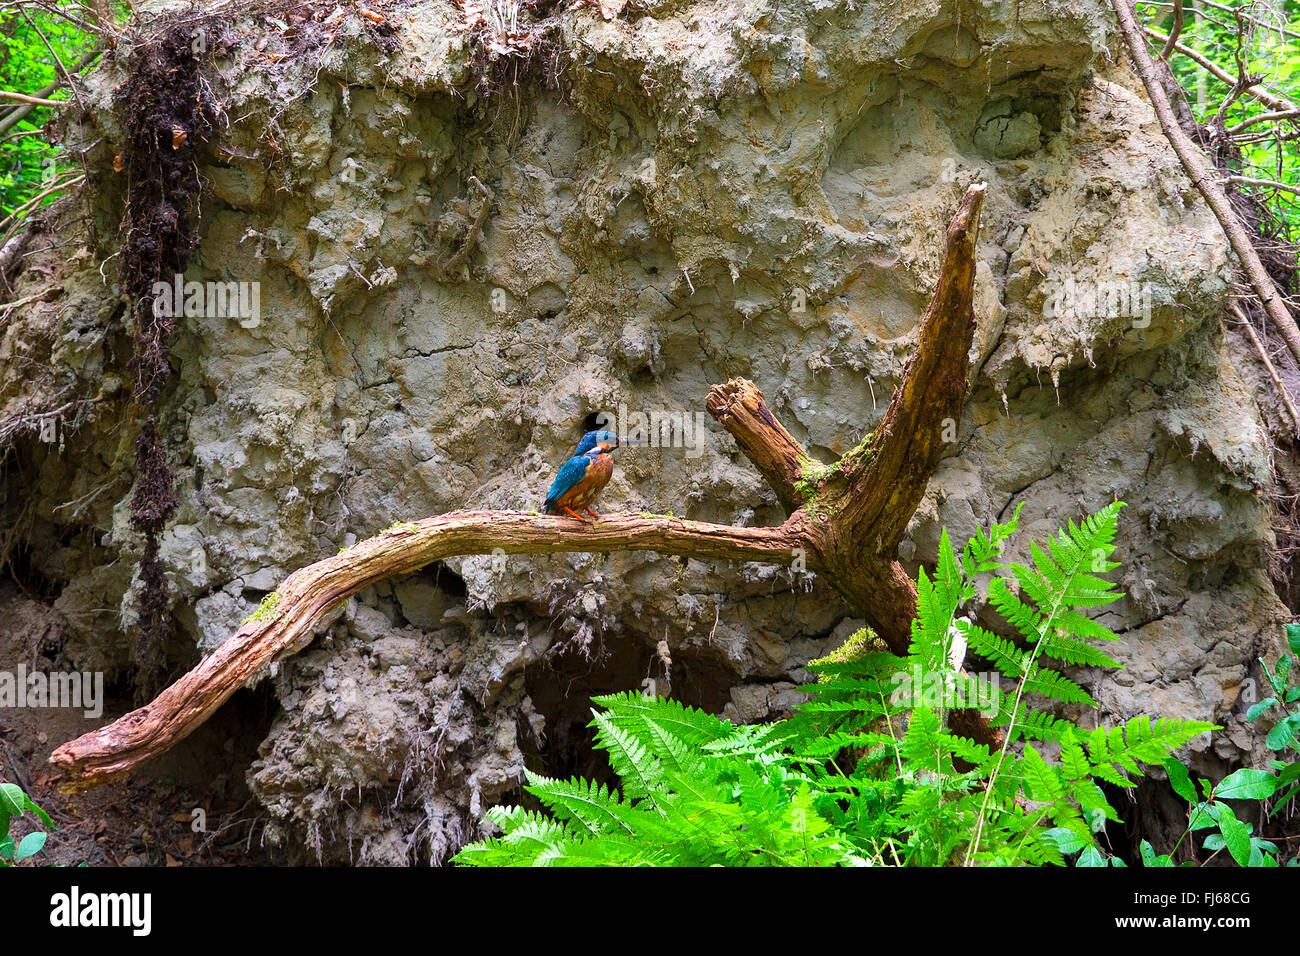 river kingfisher (Alcedo atthis), in front of the breeding cave in the roots of a fallen tree, Germany, North Rhine - Stock Image